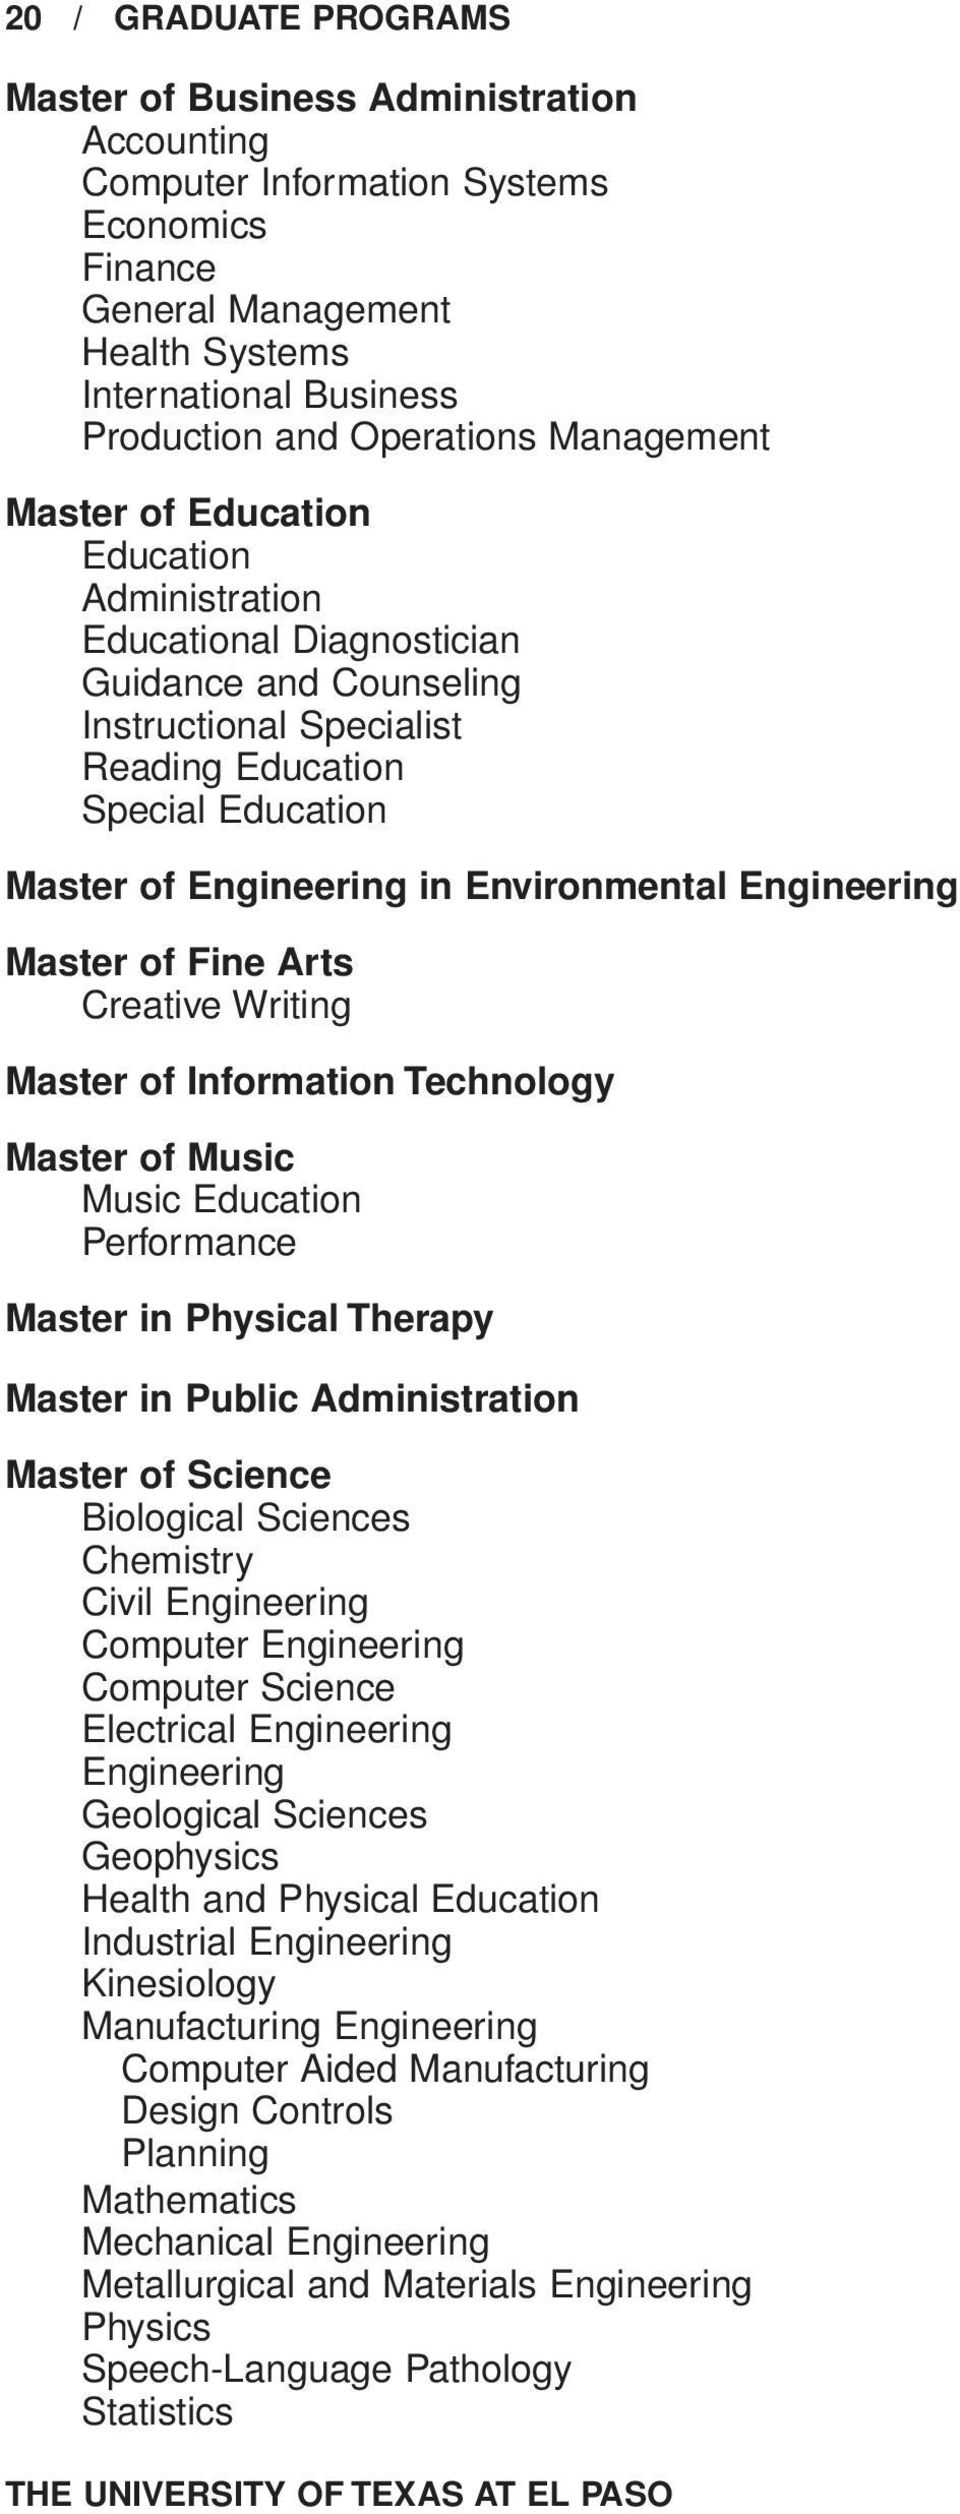 Environmental Engineering Master of Fine Arts Creative Writing Master of Information Technology Master of Music Music Education Performance Master in Physical Therapy Master in Public Administration